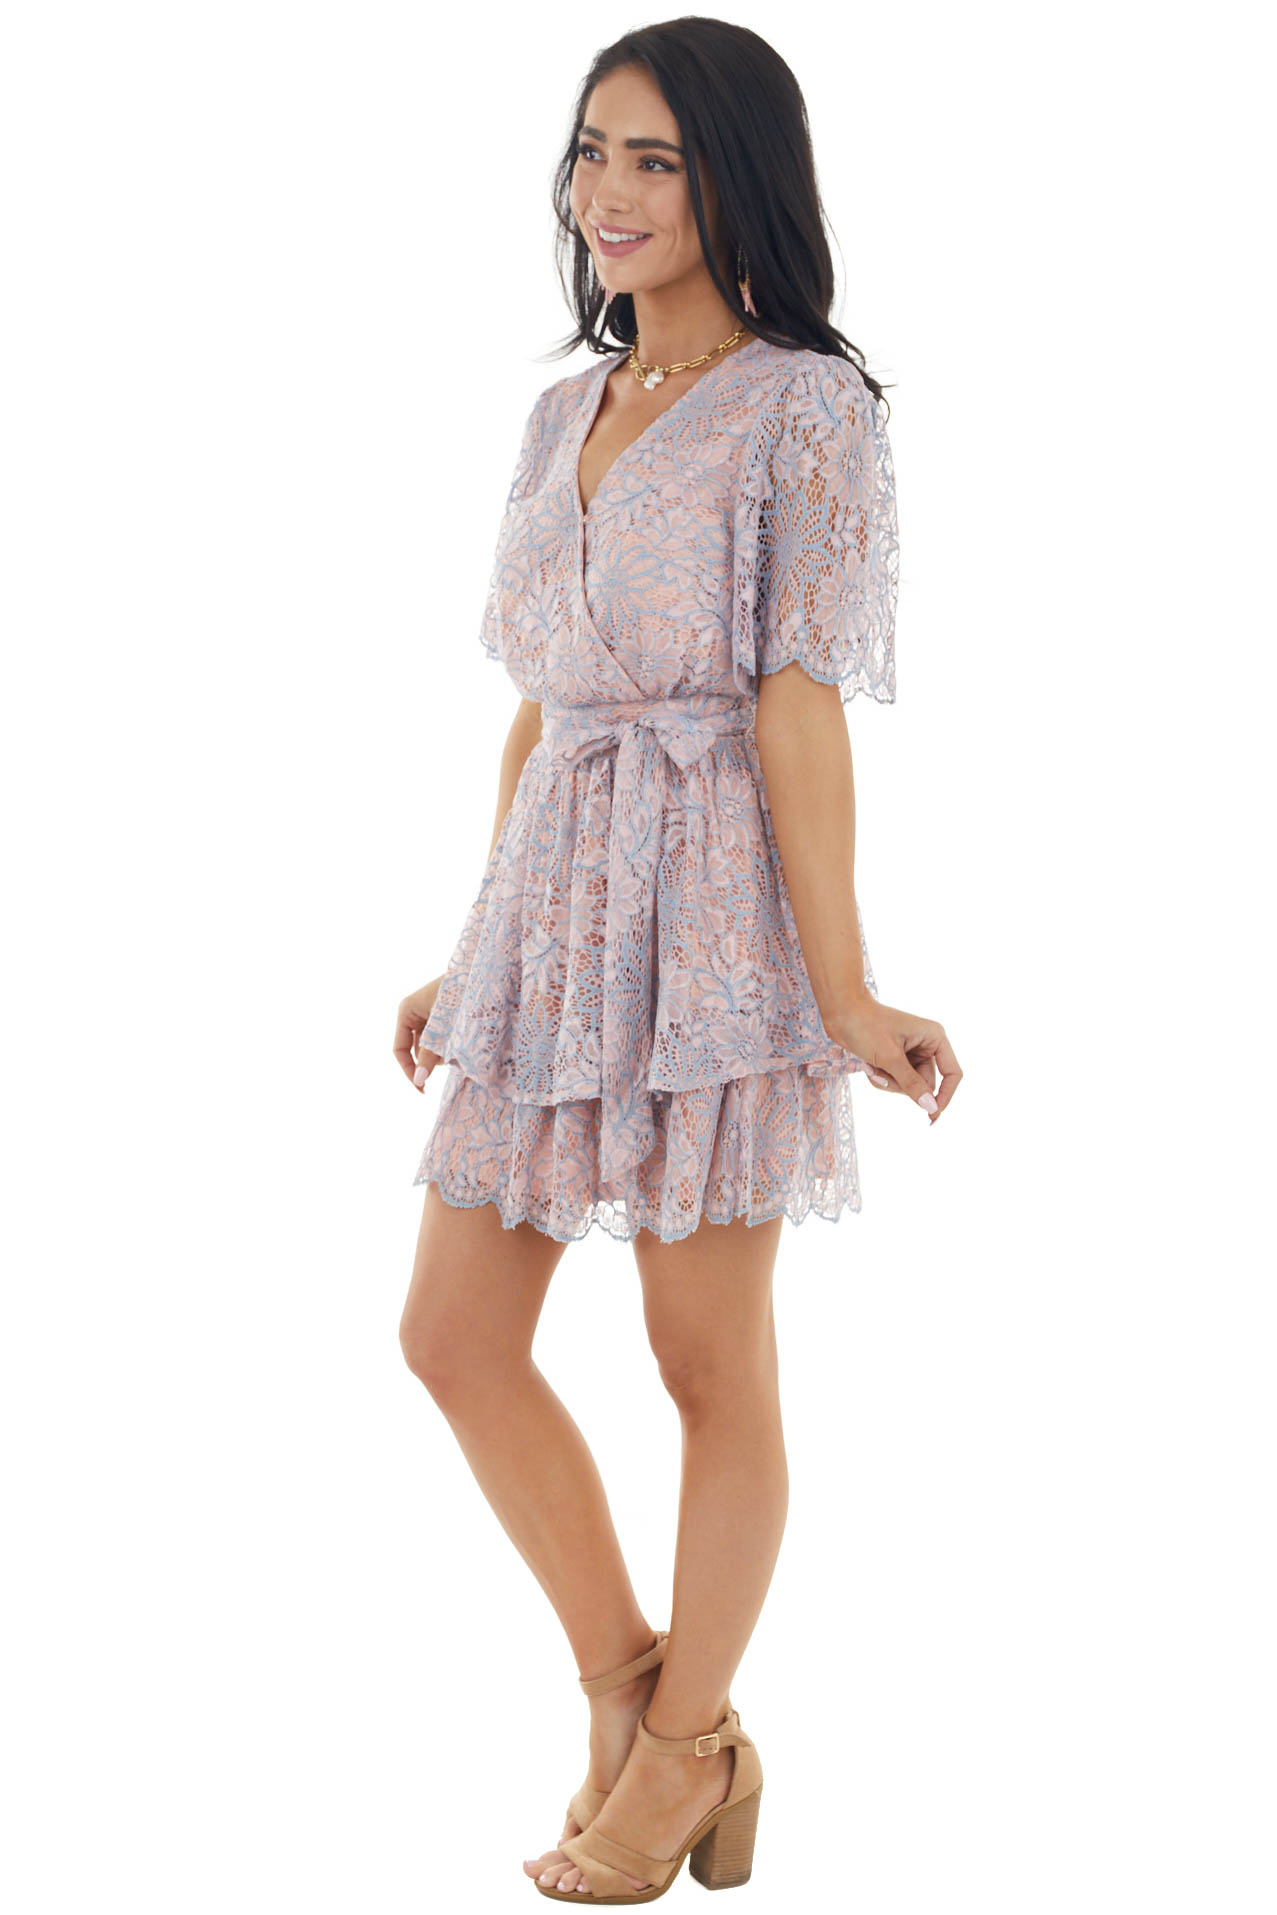 Dusty Blush and Powder Blue Floral Lace Woven Mini Dress